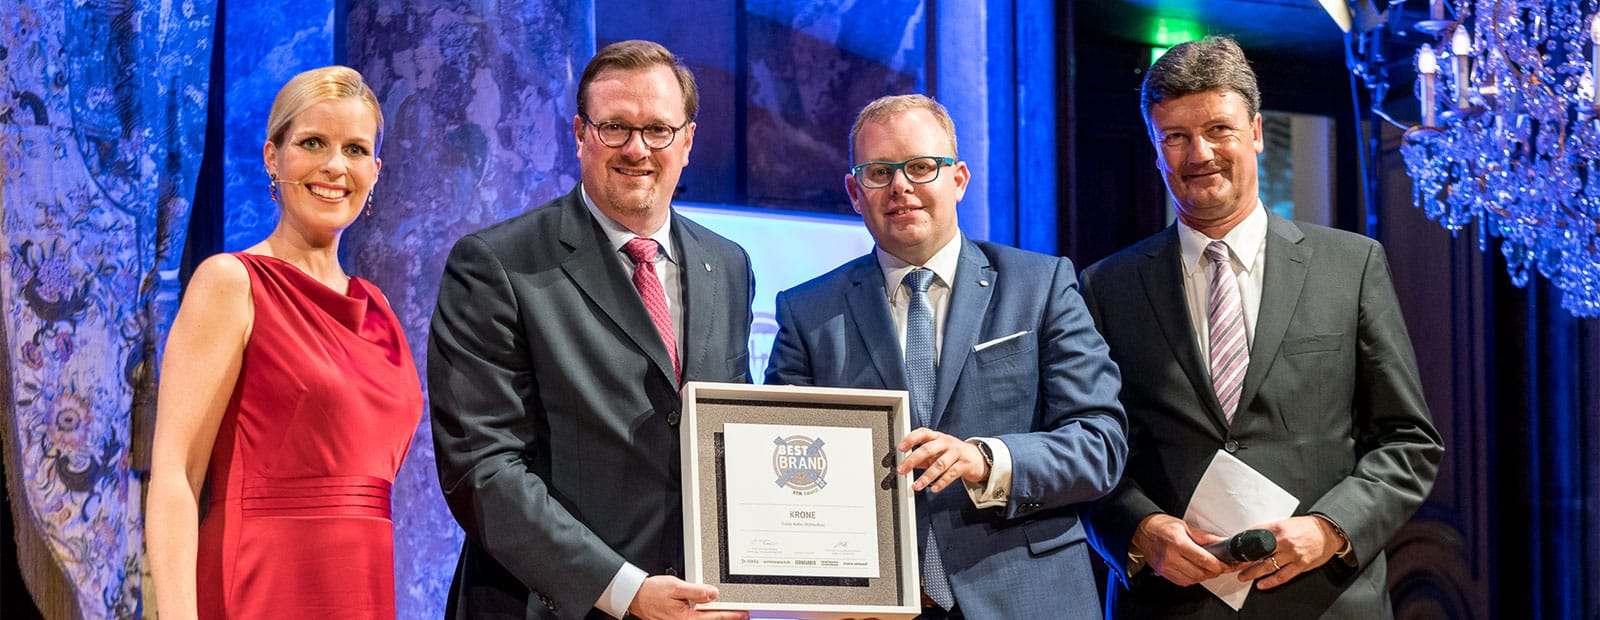 "Customer focus pays off: Krone twice awarded ""Best Brand 2017"""